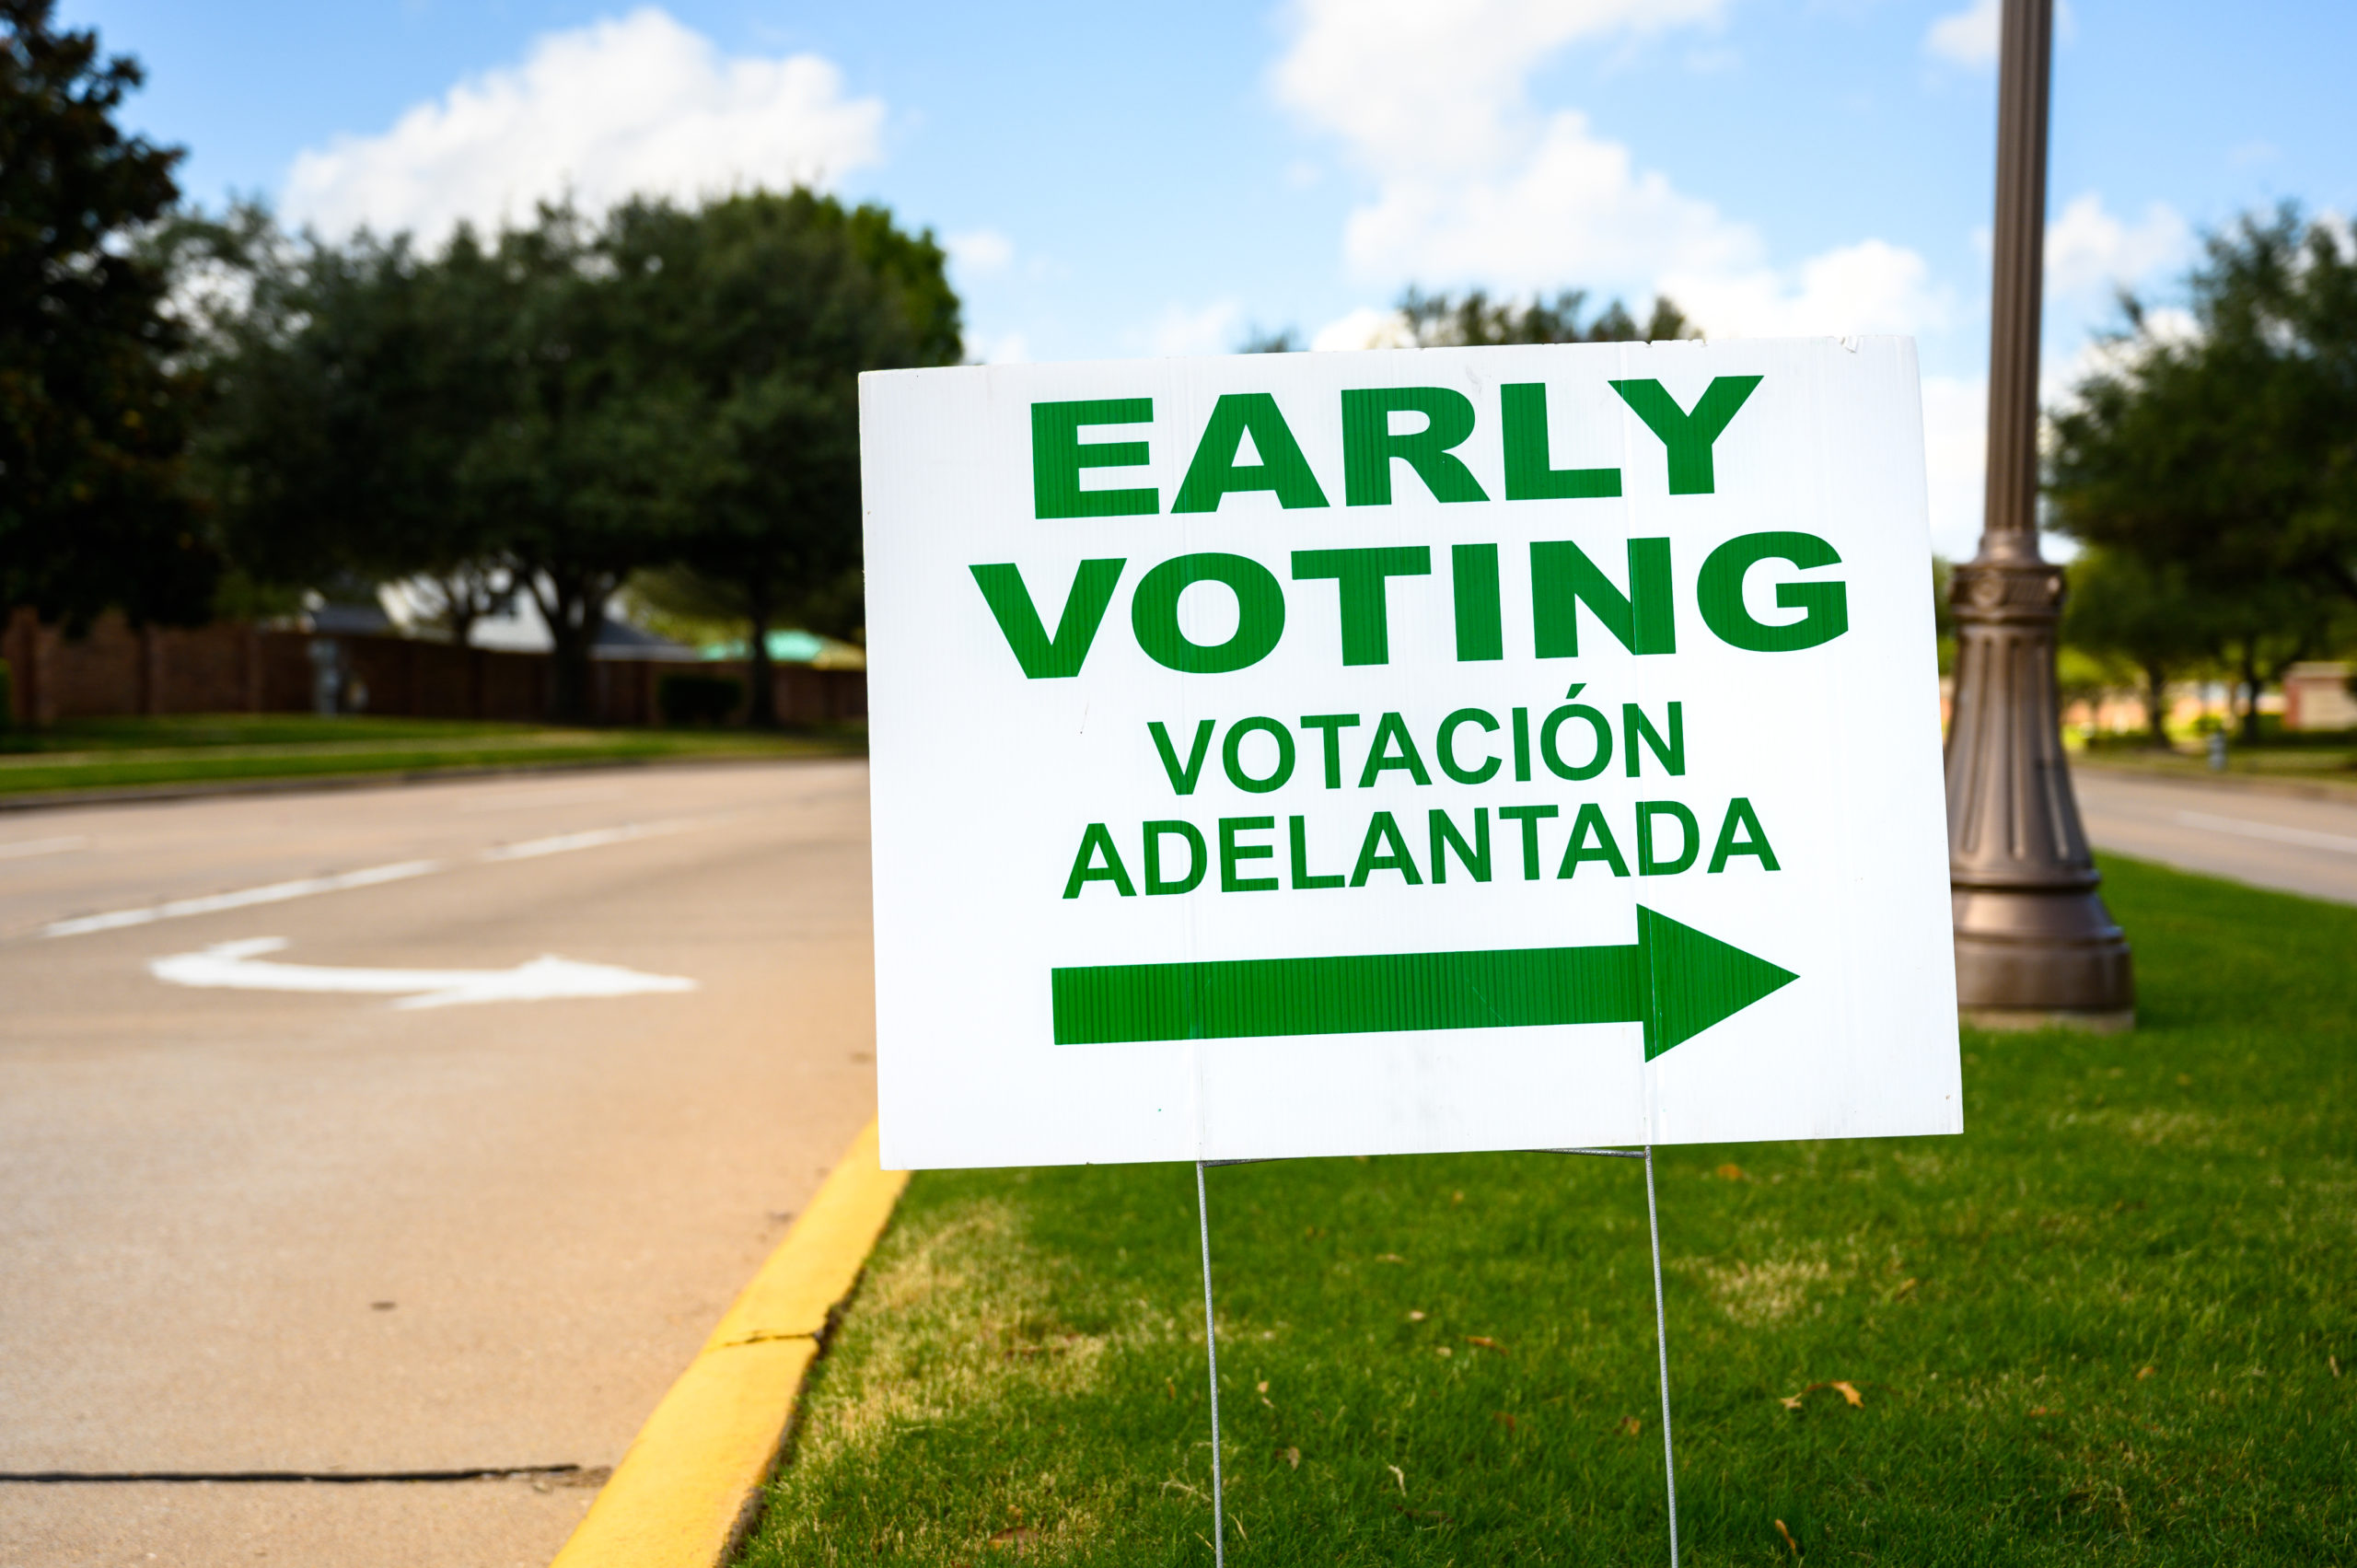 A sign directs residents in Texas to an early voting polling location for the 2020 Presidential election.